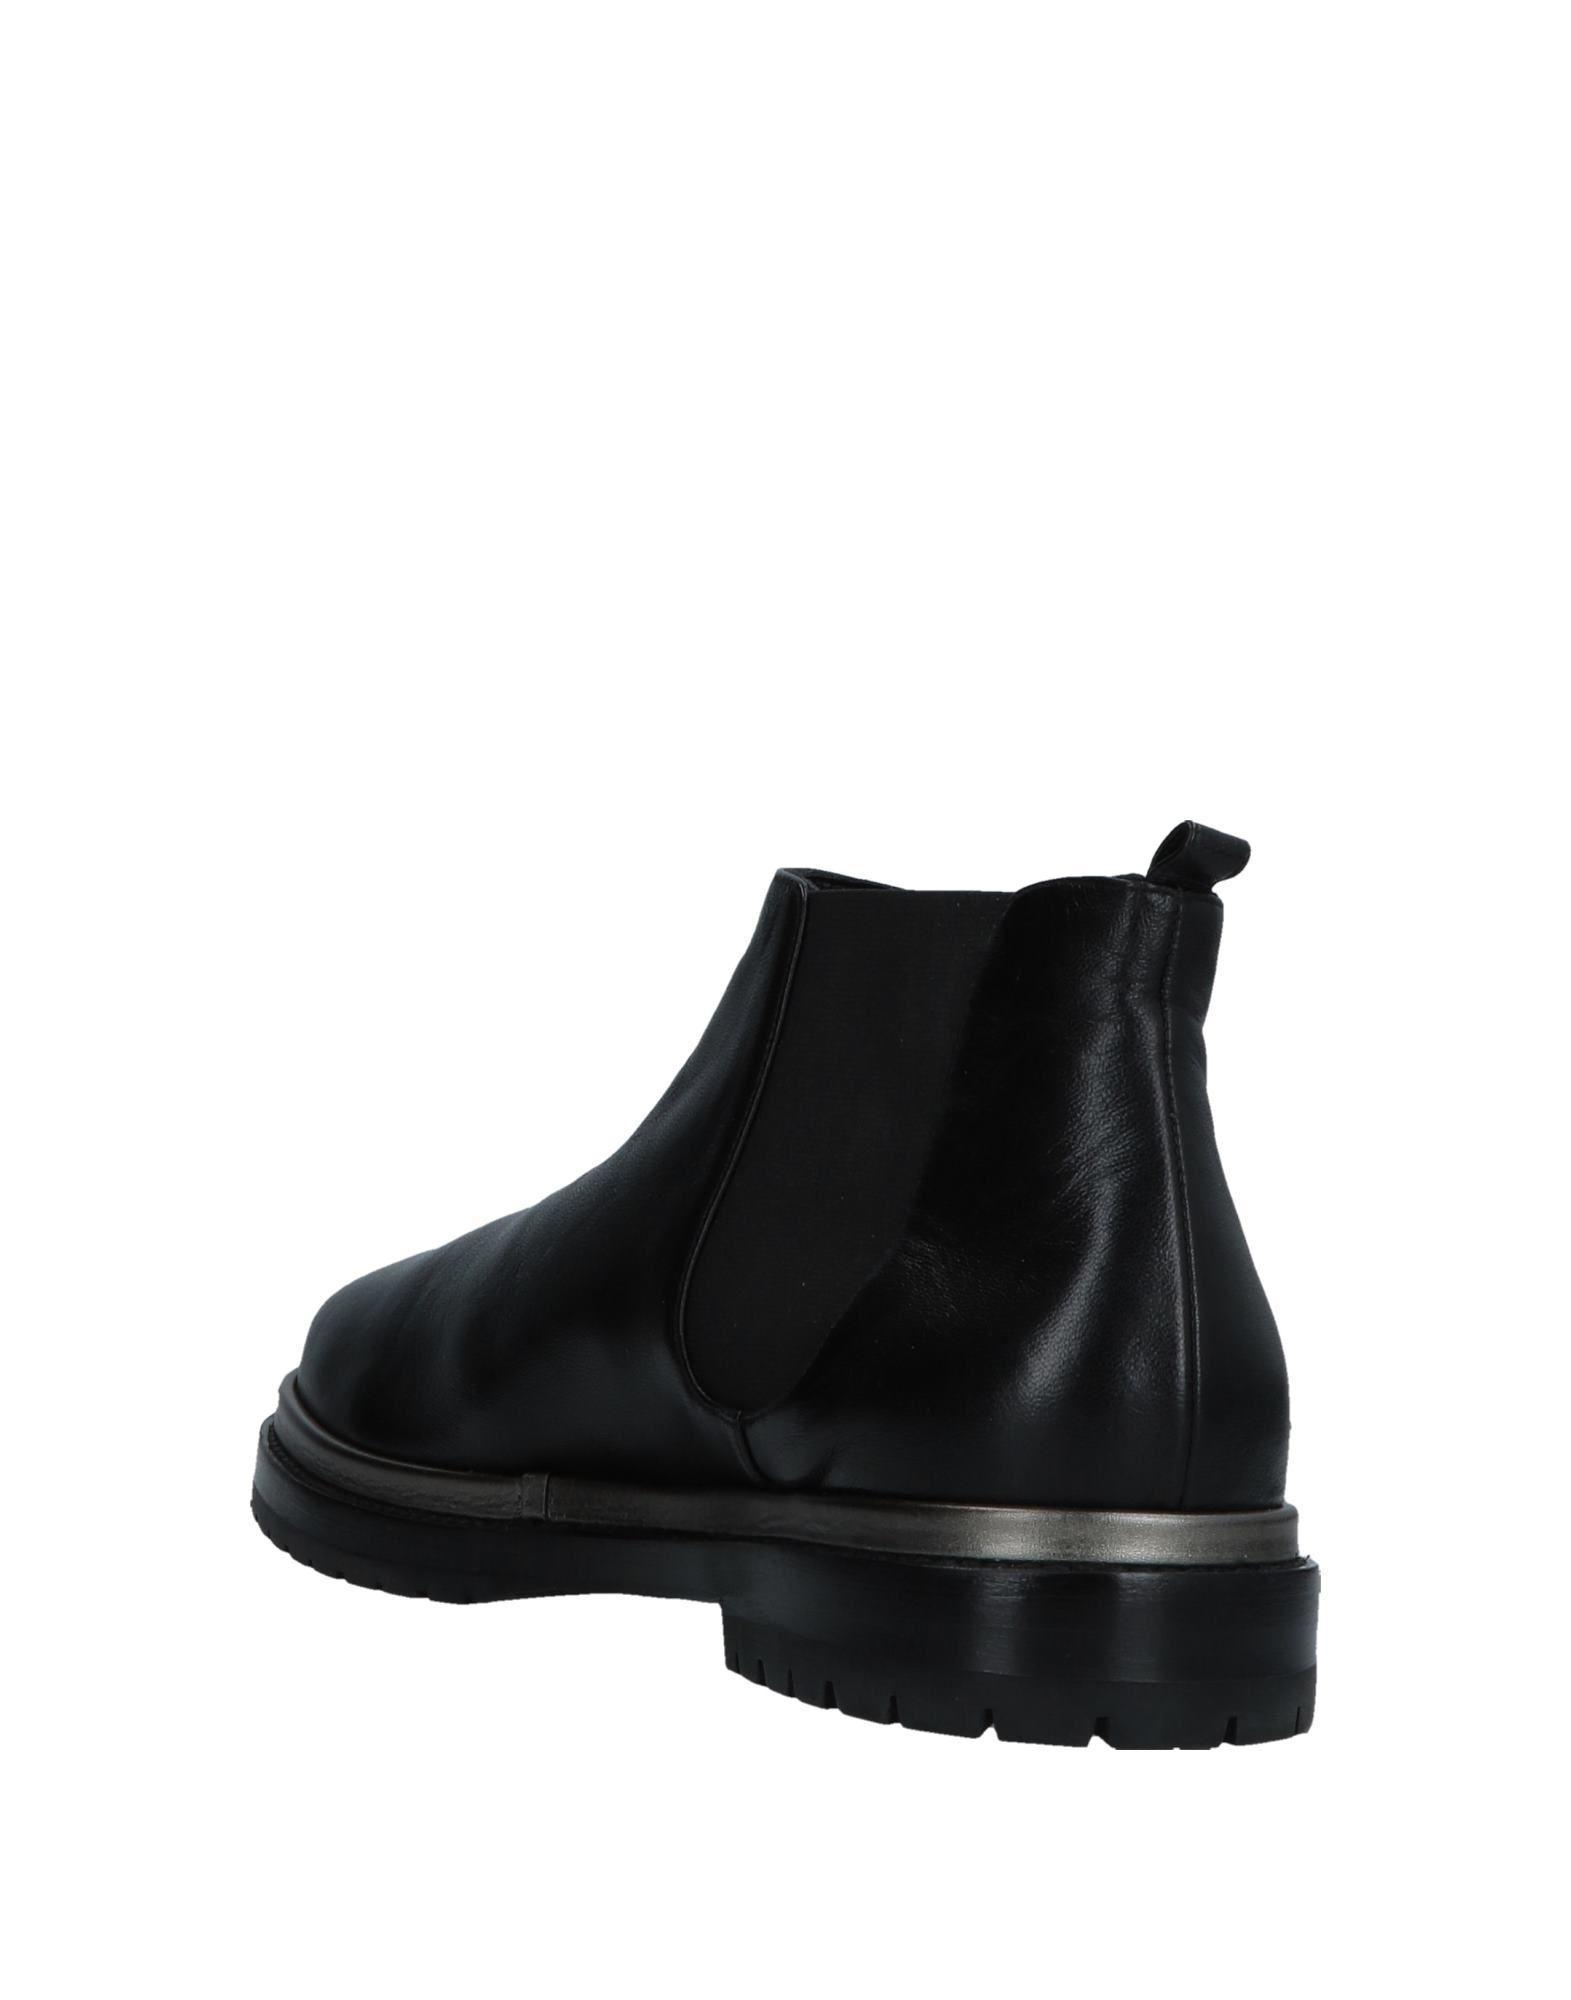 782bc717daf802 Unisa Ankle Boots in Metallic - Lyst